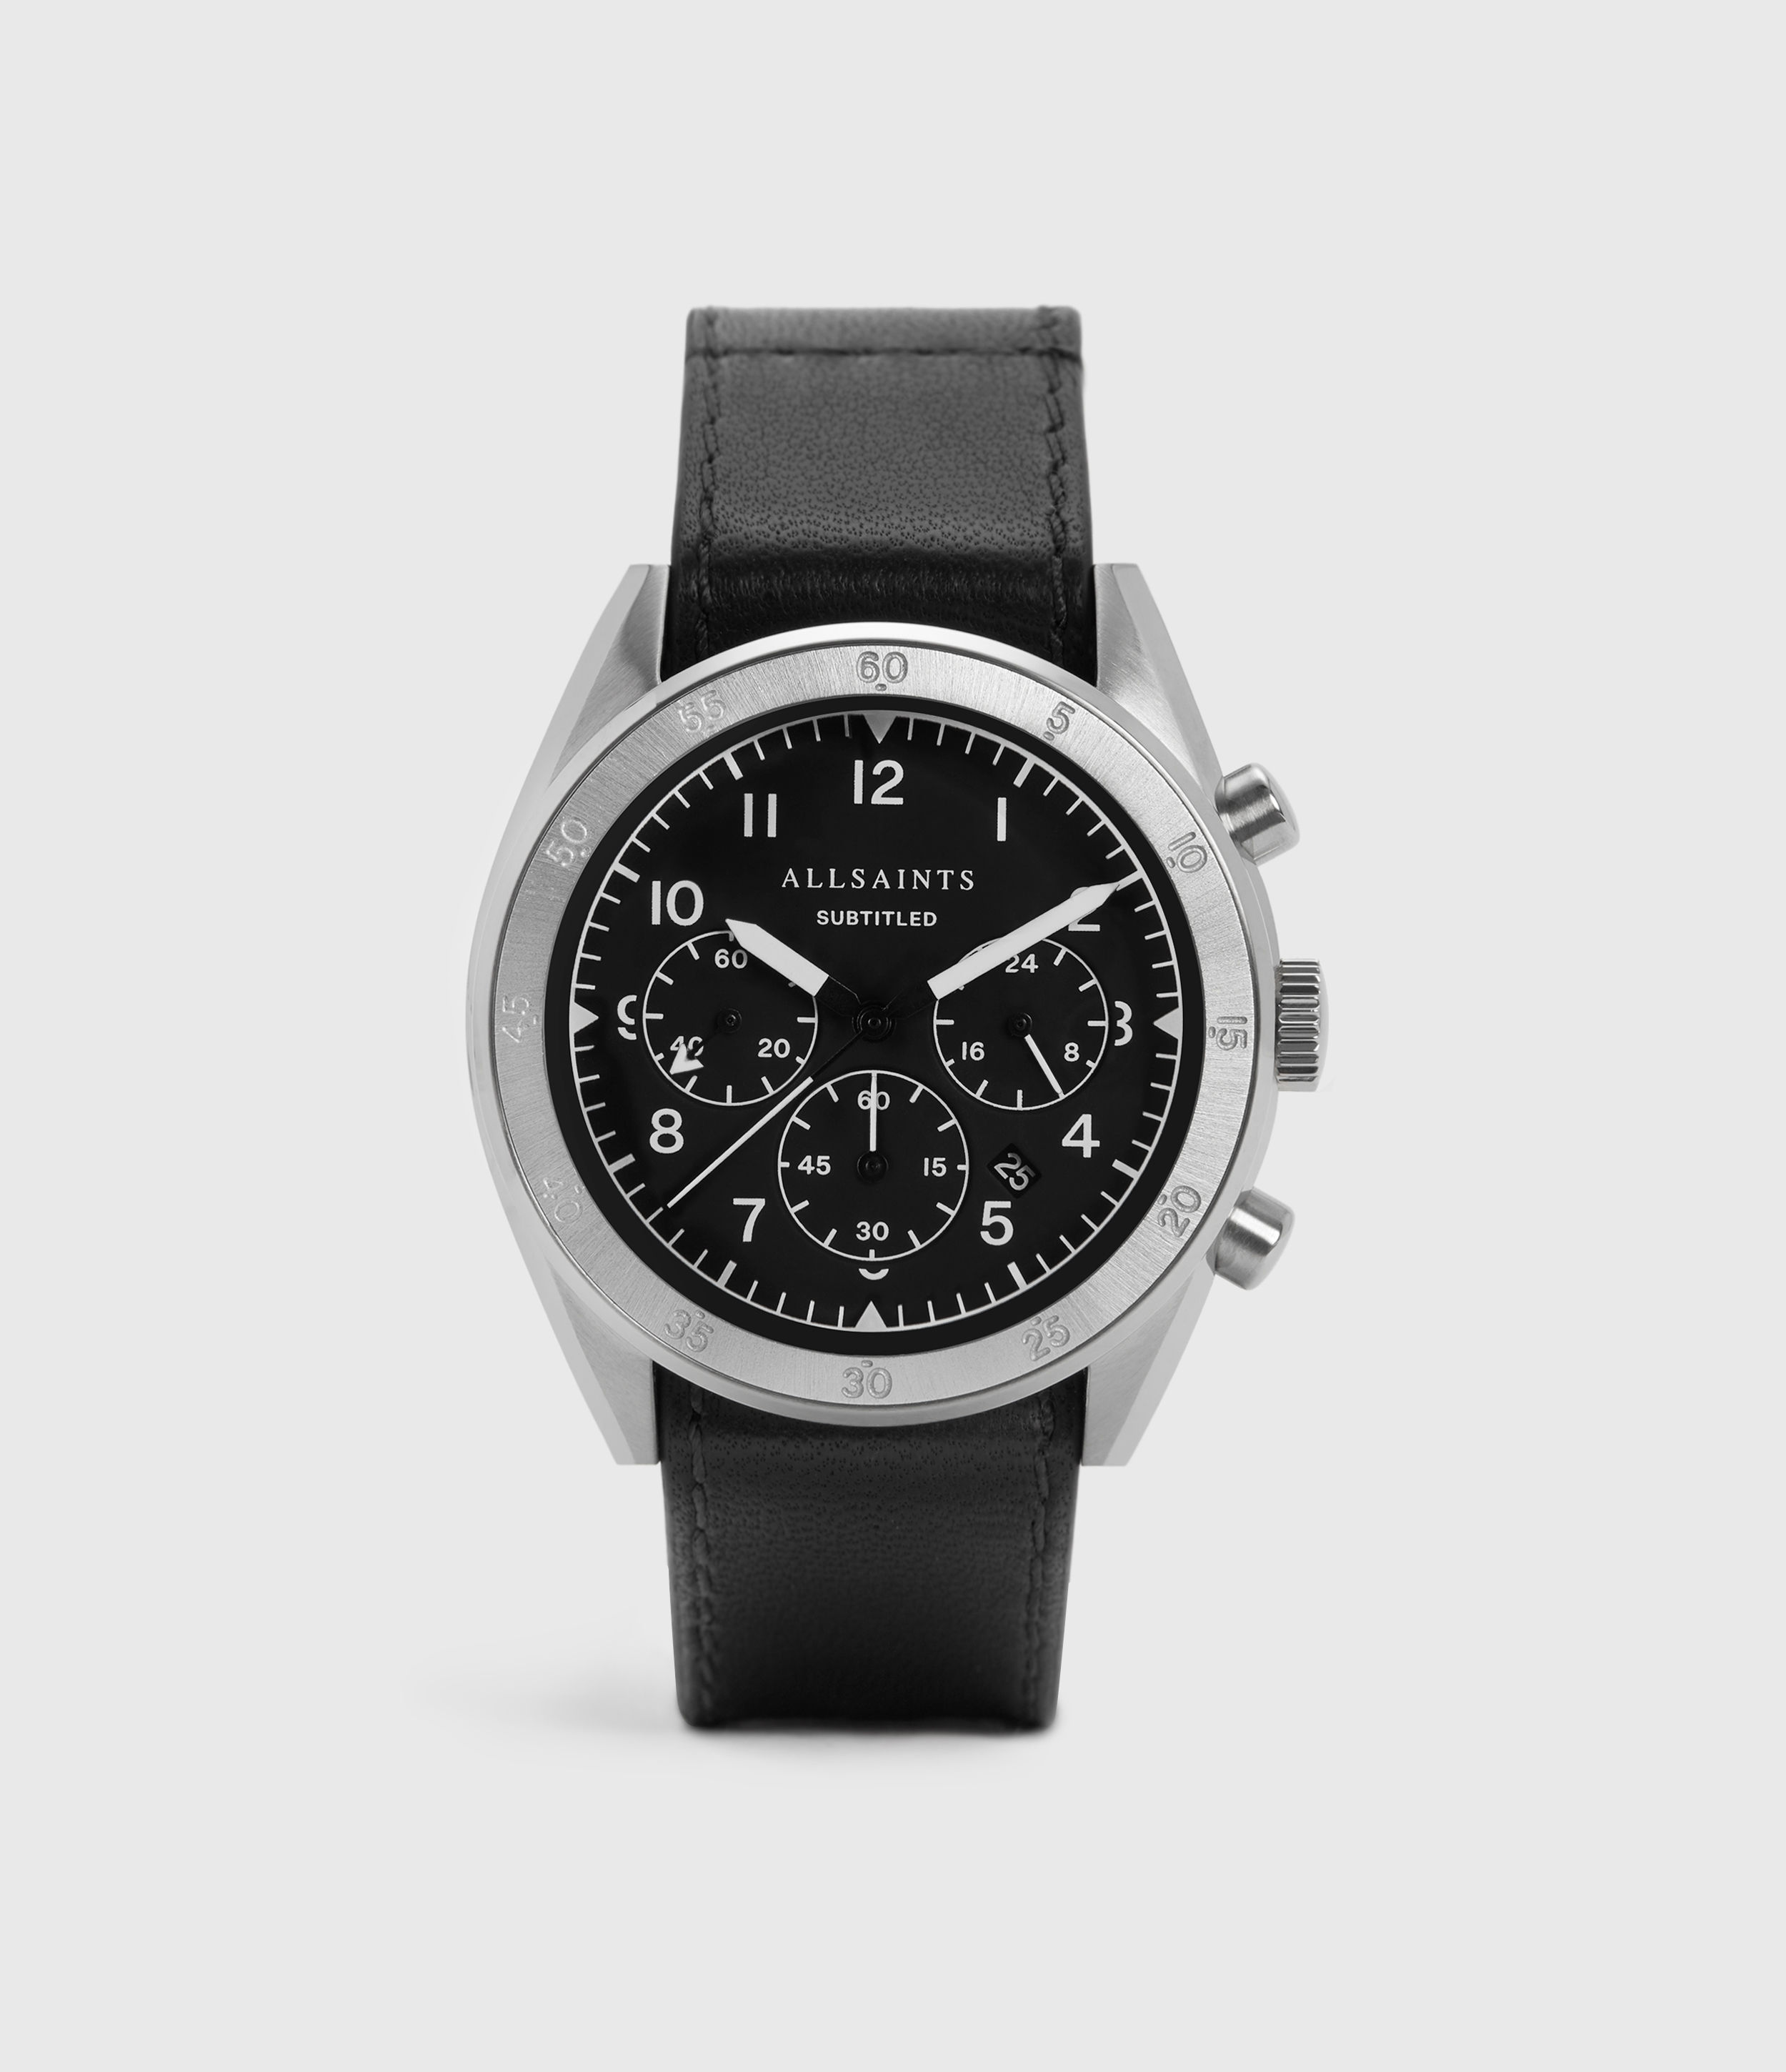 AllSaints Men's Leather Subtitled IV Watch, Black and Silver